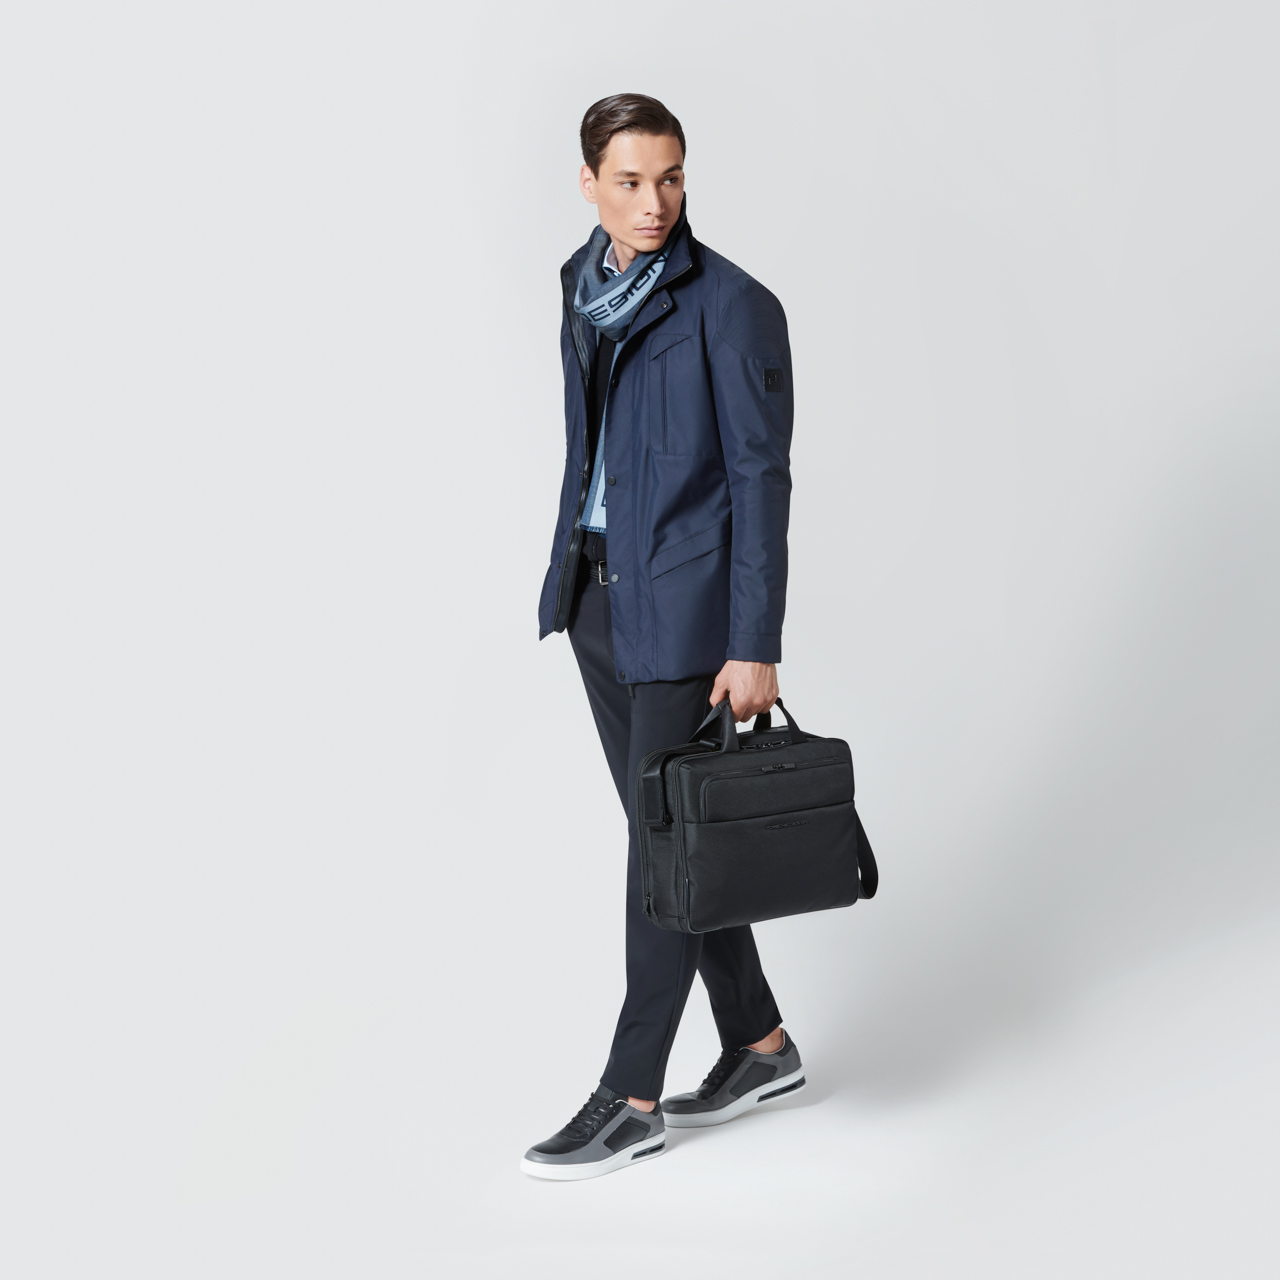 Roadster 4.1 XL Briefbag